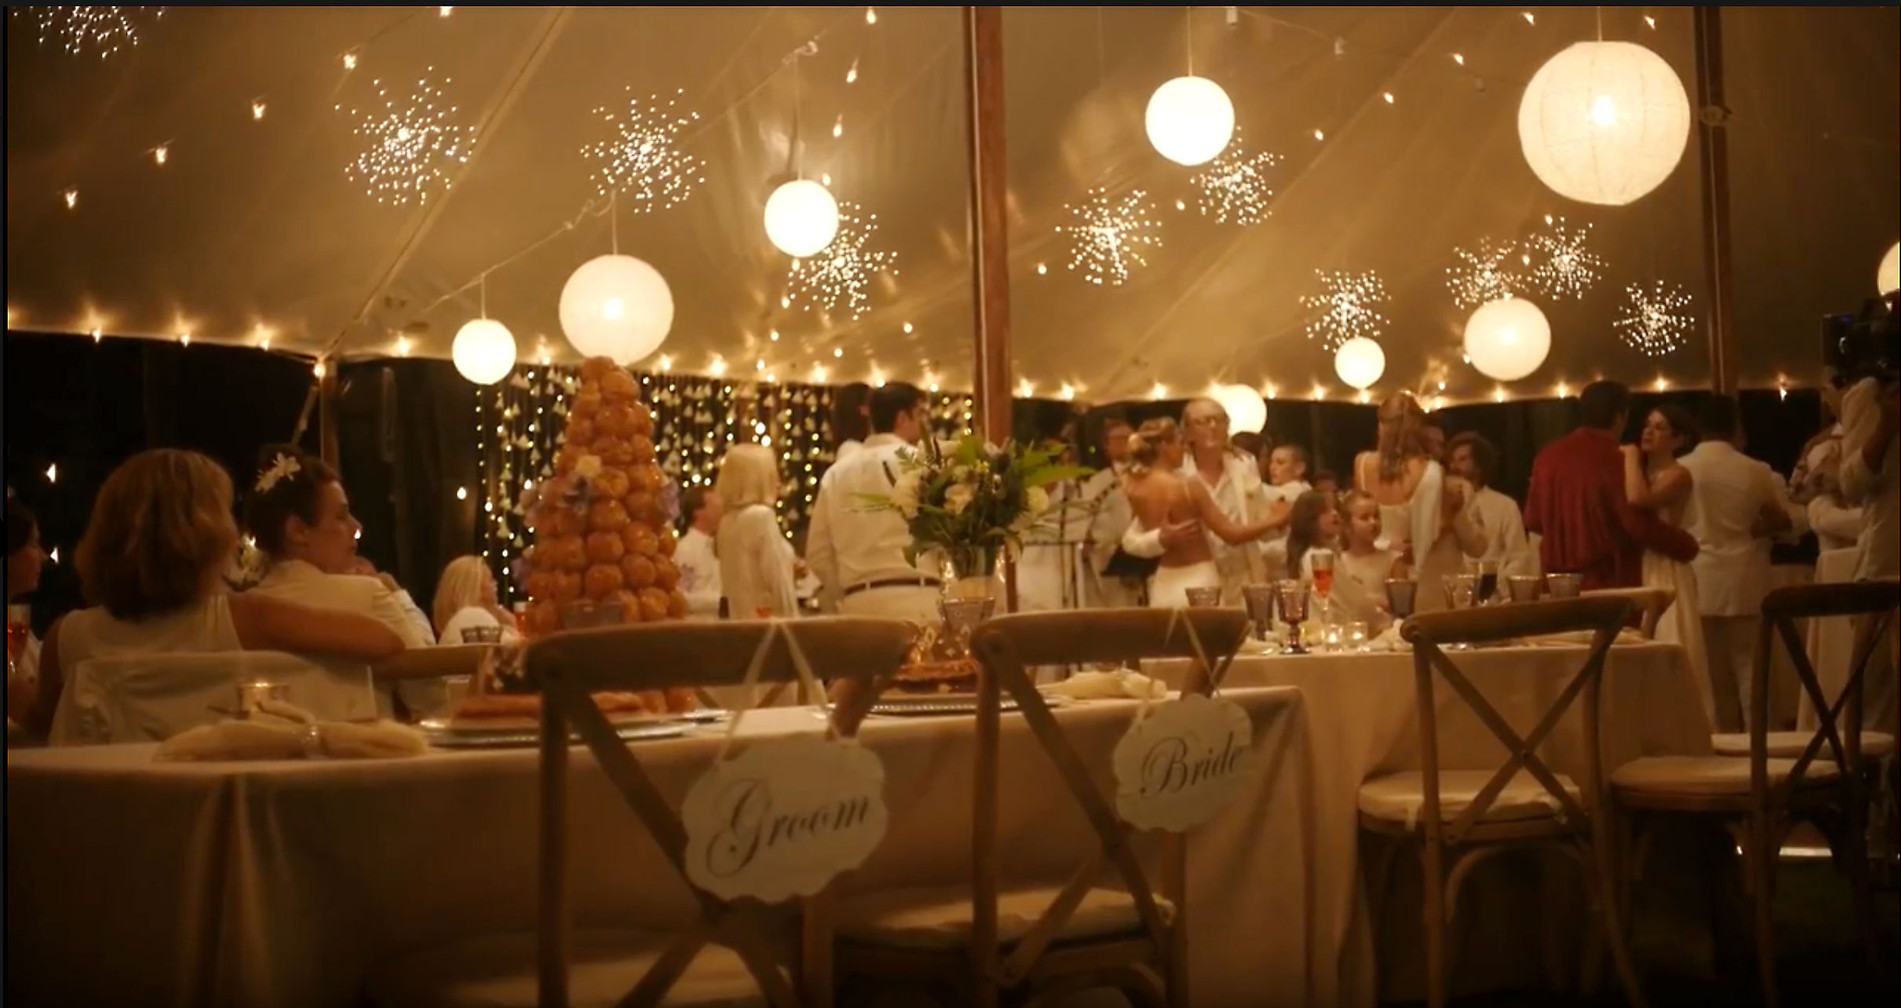 Film Still - Wedding Tent